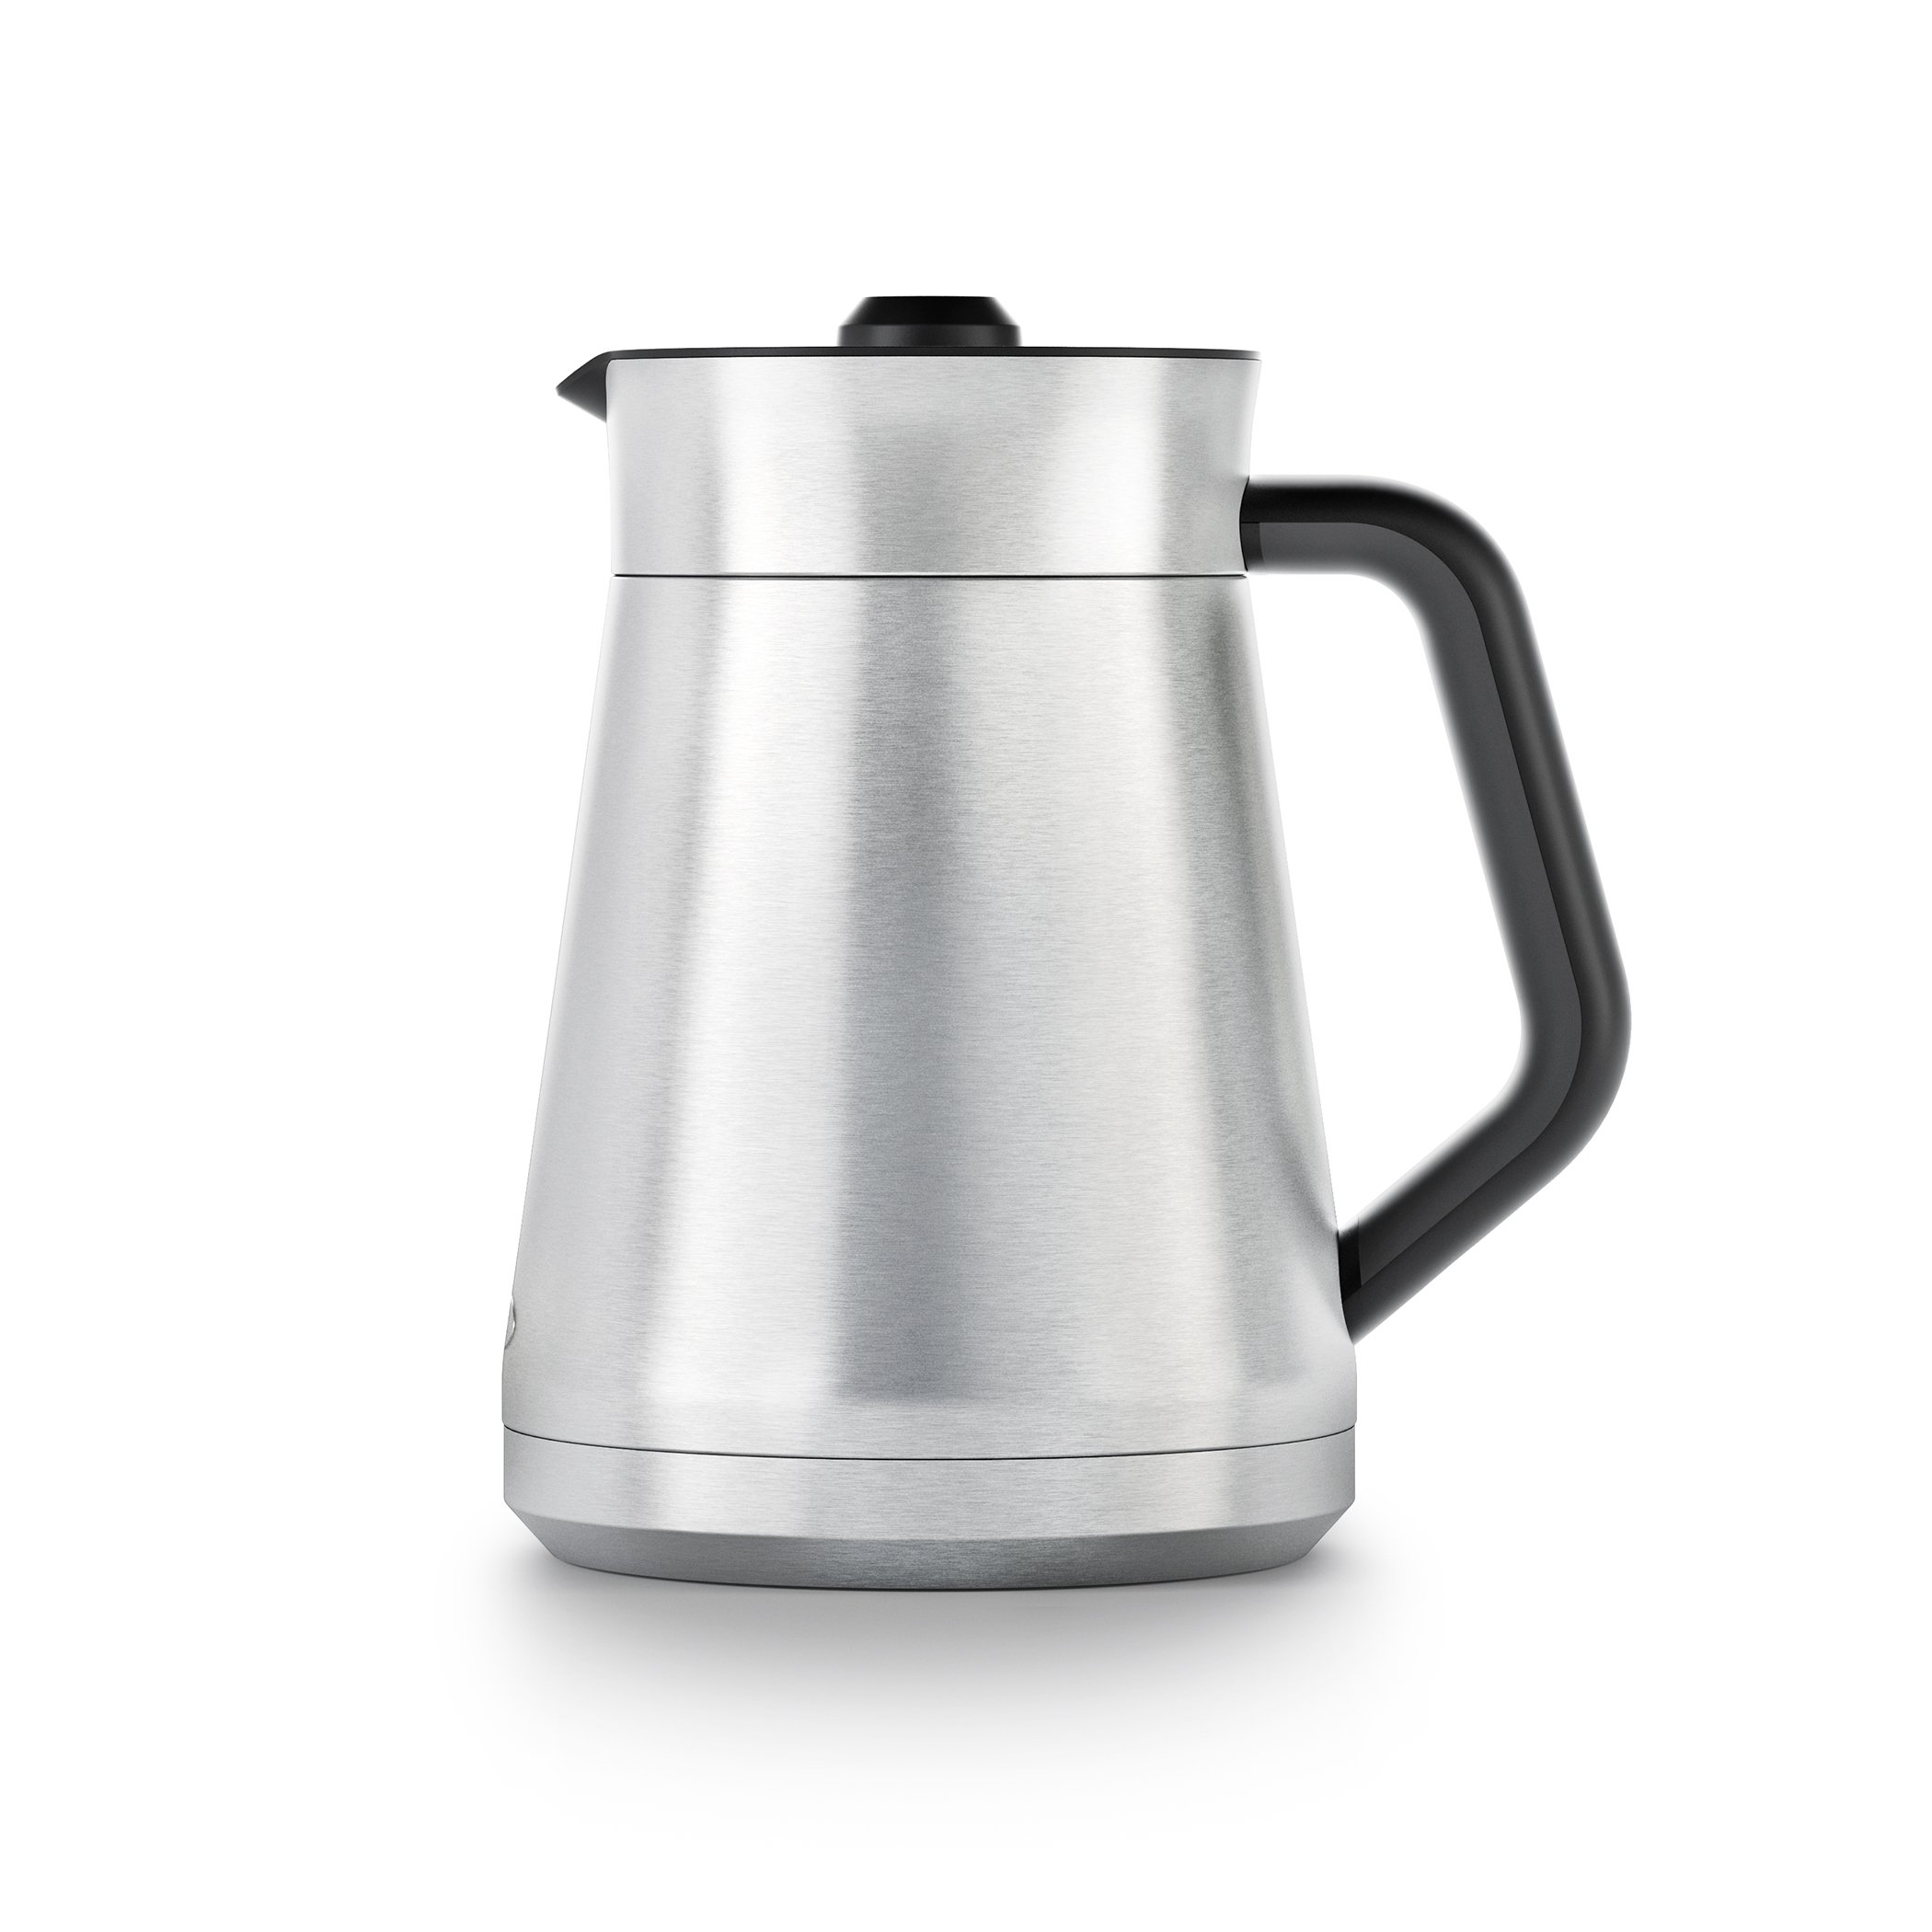 OXO 8715600 On 9 Cup Coffee Maker & Brewing System Replacement Carafe, Stainless Steel by OXO